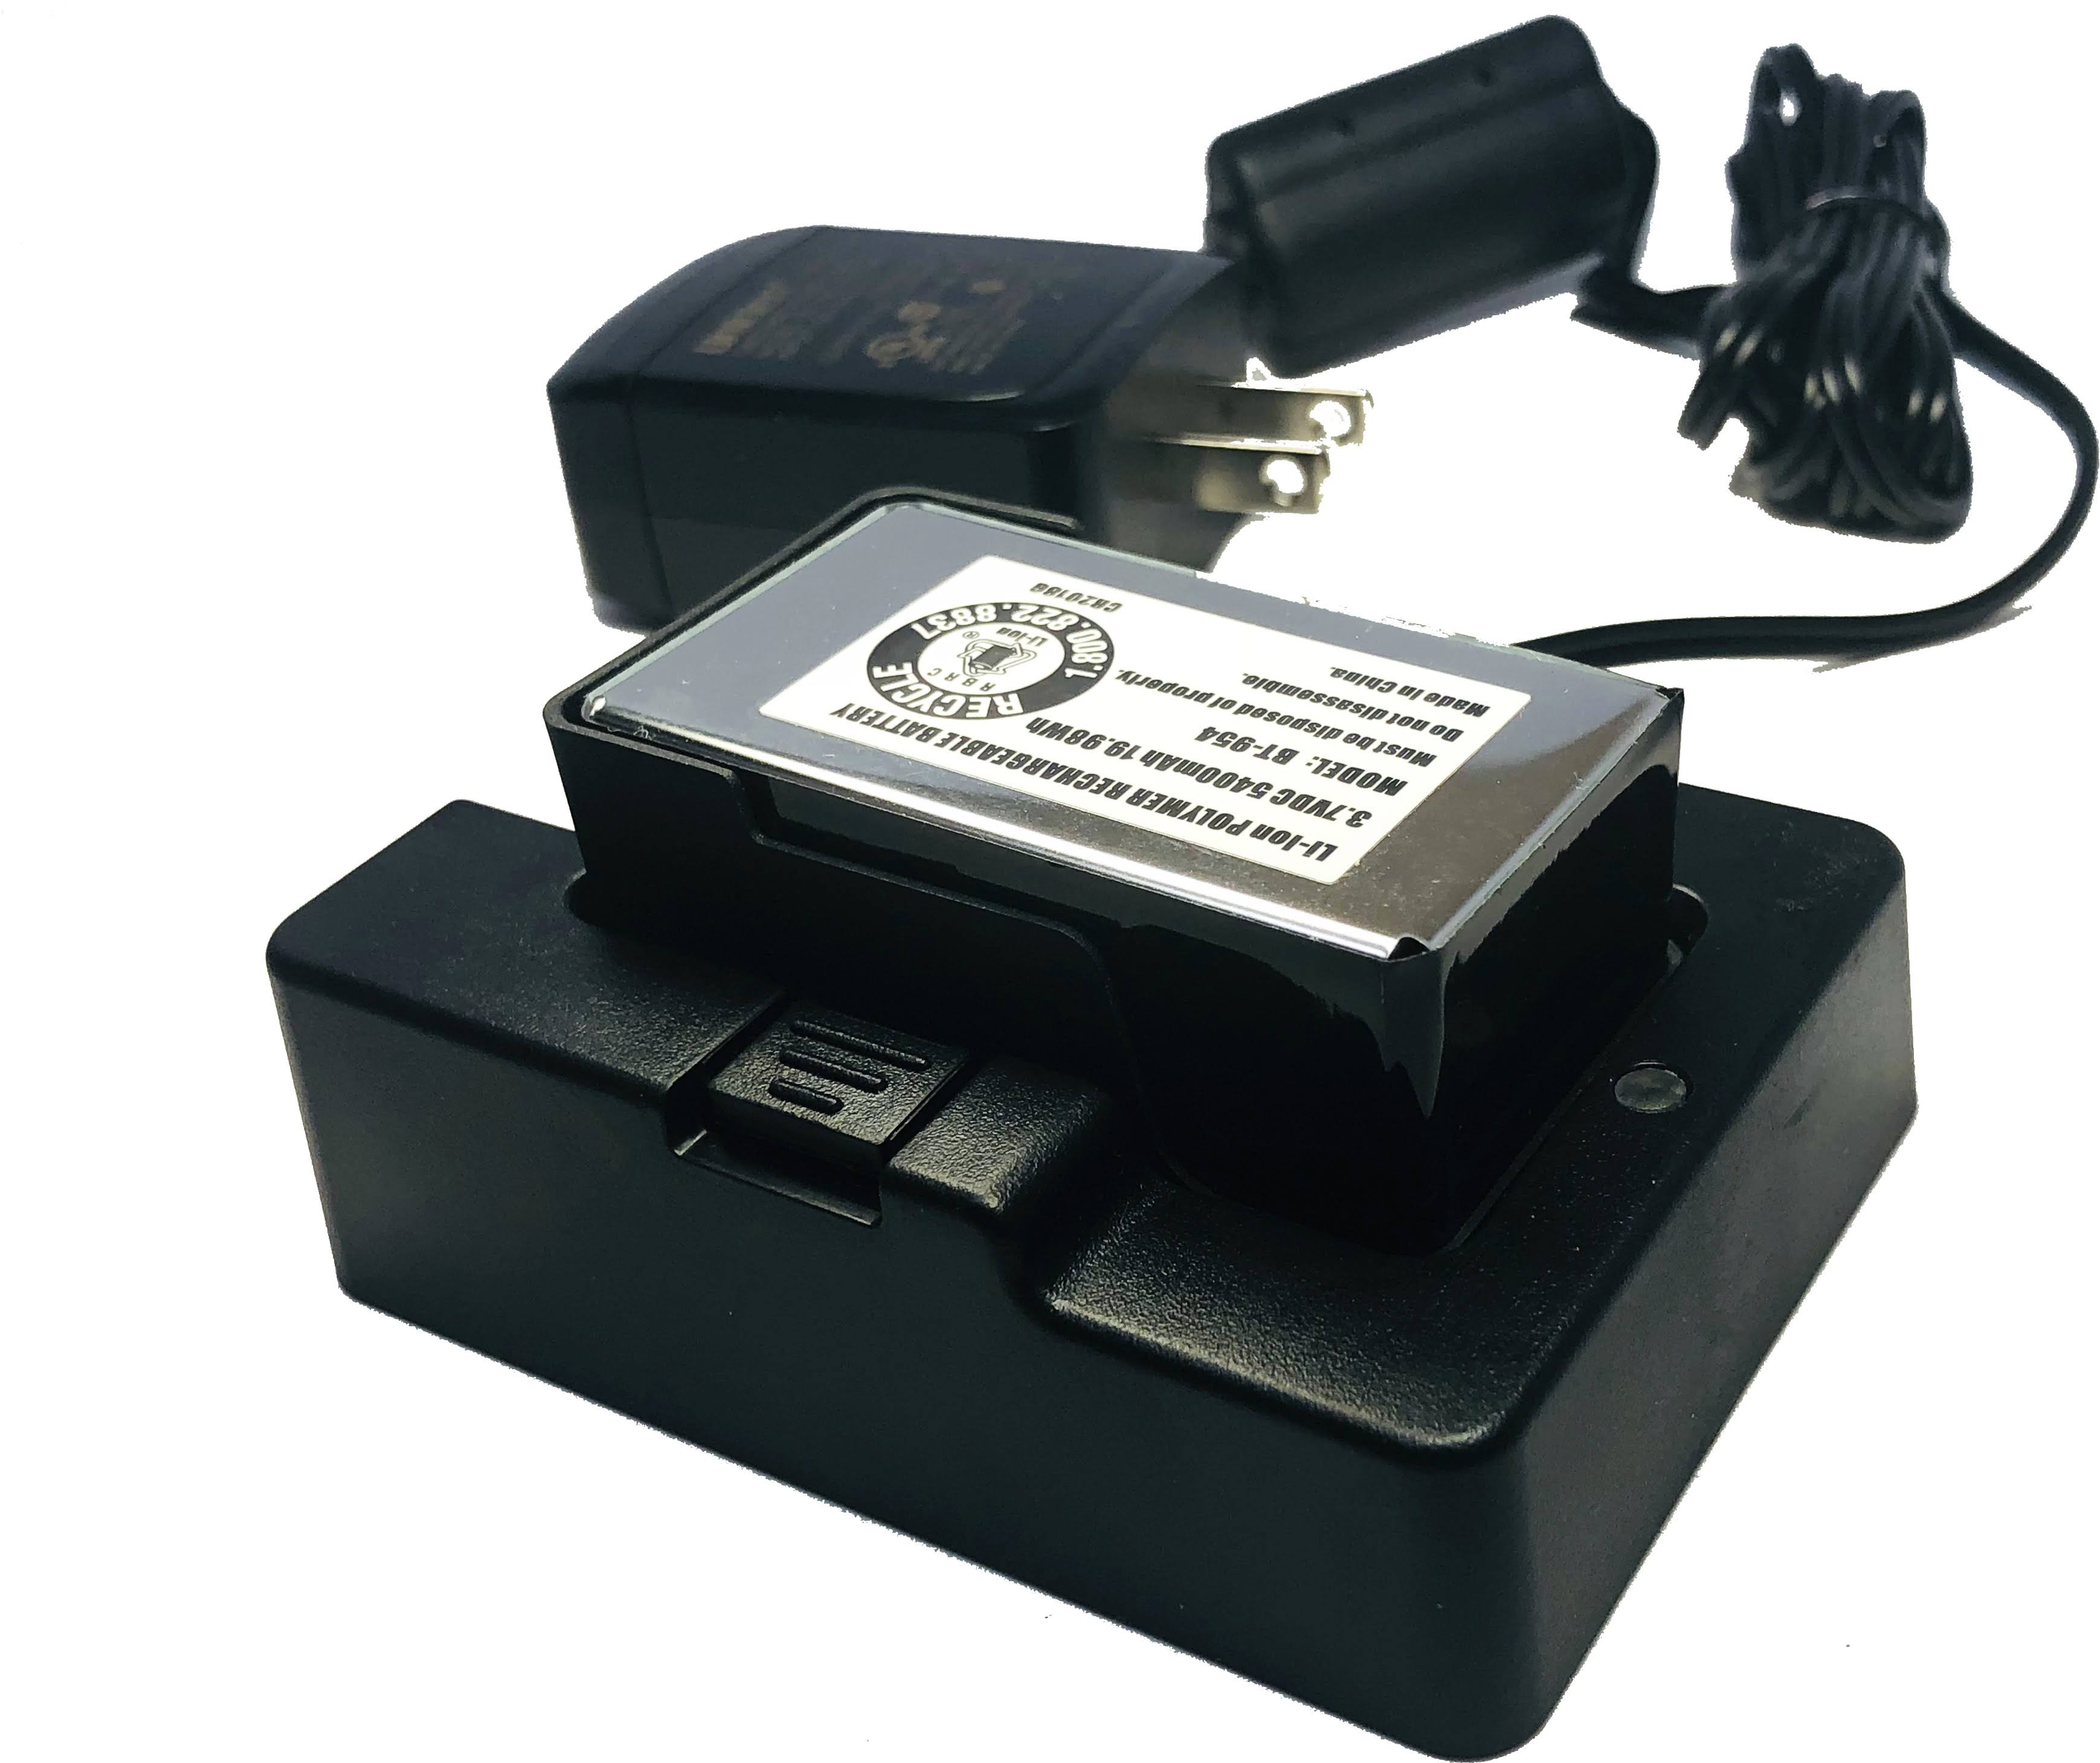 EBC100 - Uniden External Battery Charger for the SDS100 Scanner